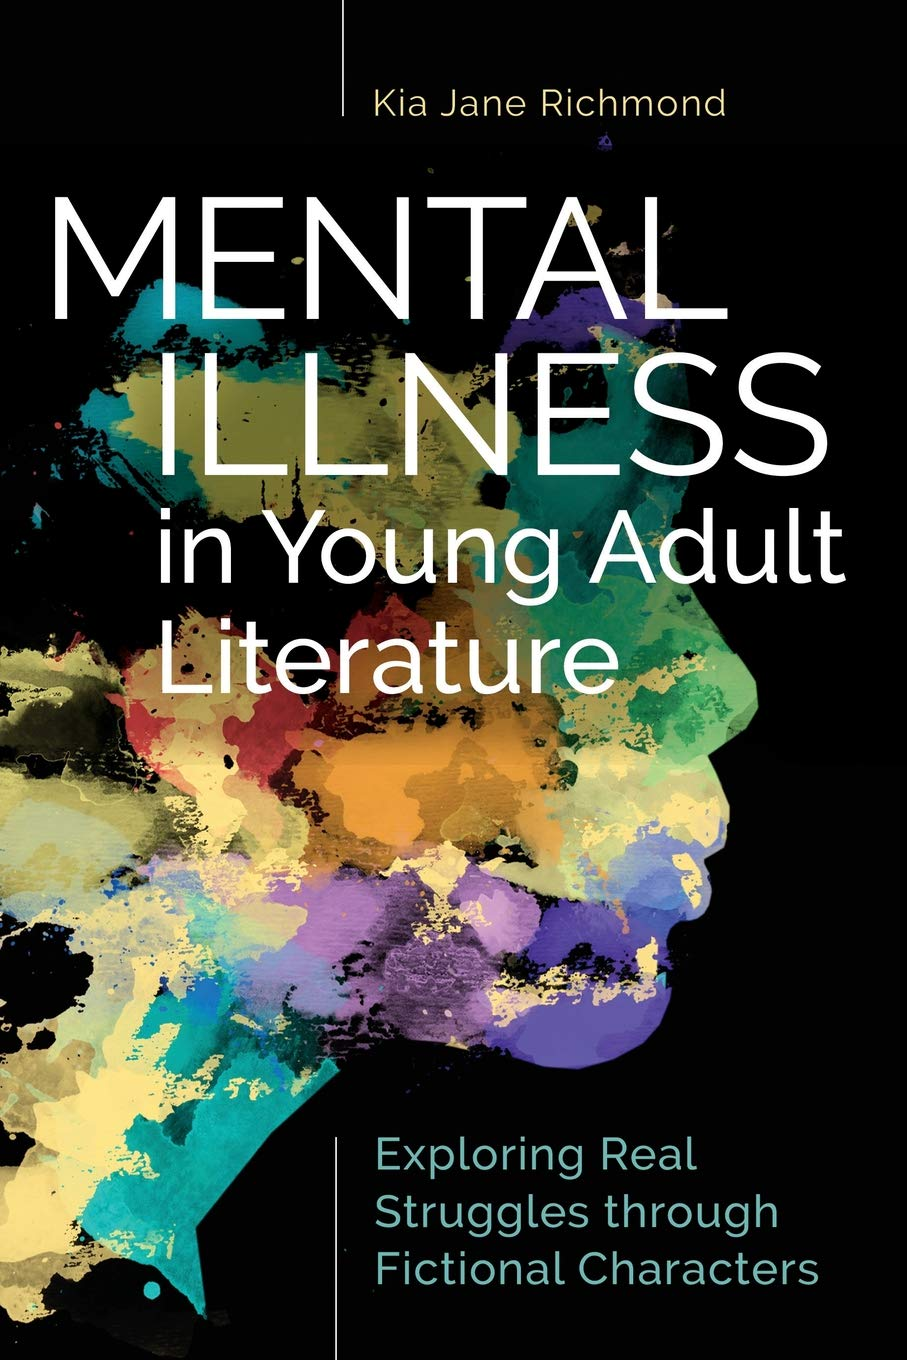 Mental Illness in Young Adult Literature: Exploring Real Struggles through  Fictional Characters Paperback – November 30, 2018